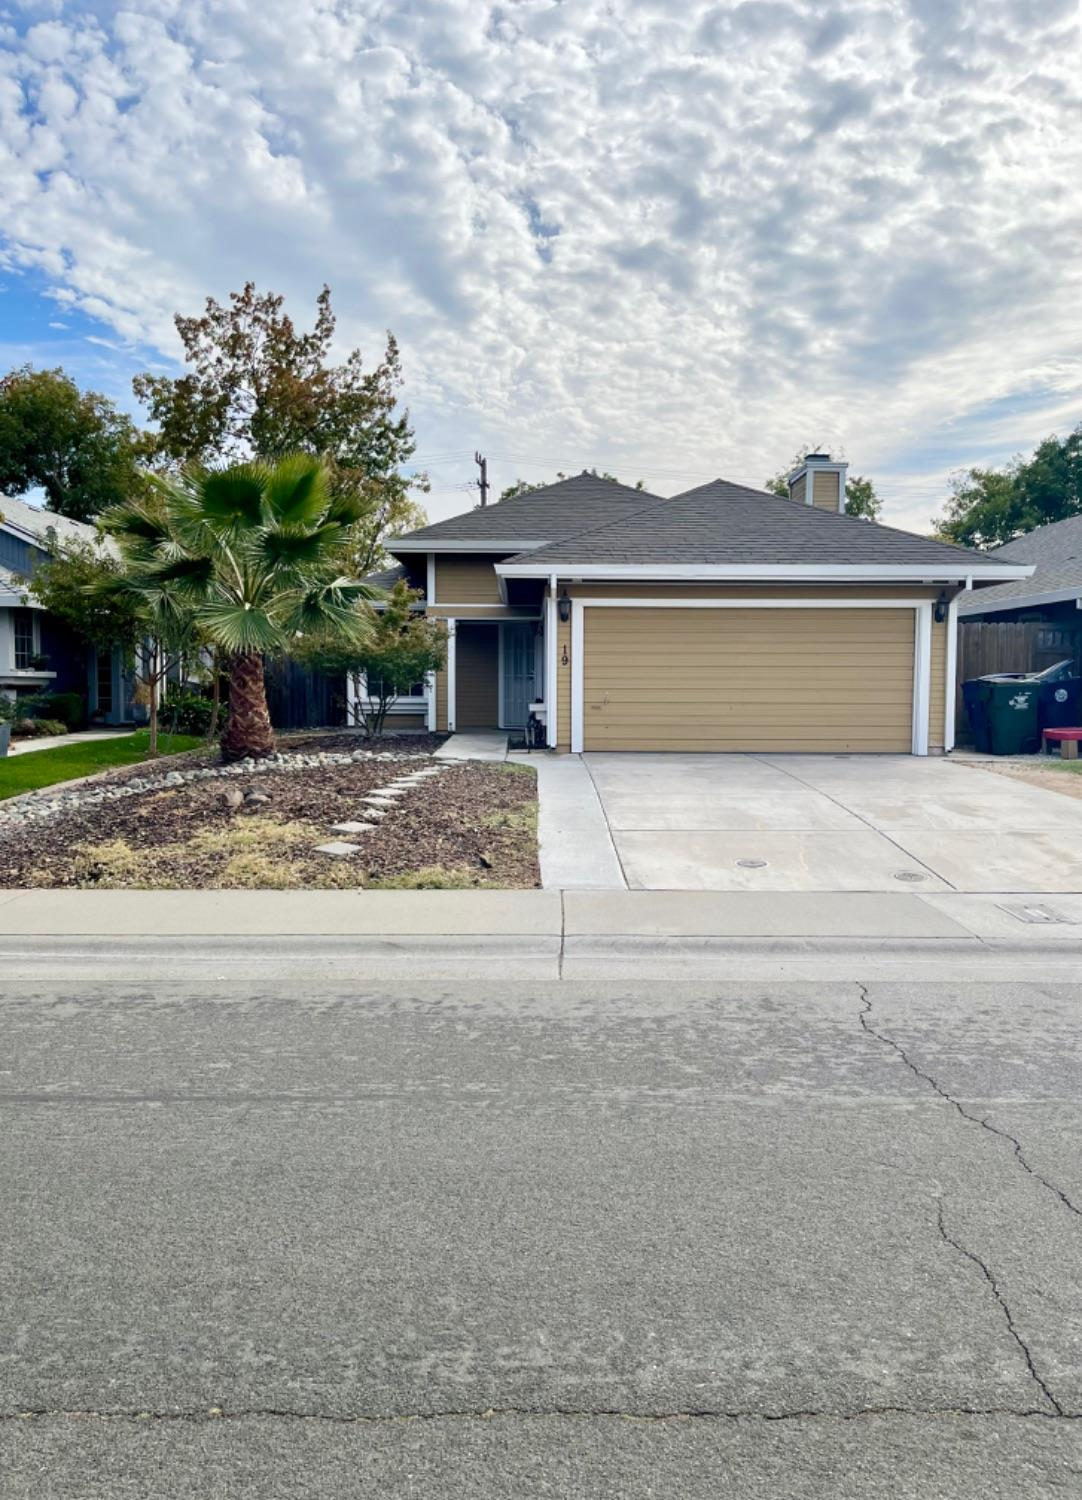 Come check out this charming 3bed/2ba home nestled in a cul-de-sac! This home features granite count